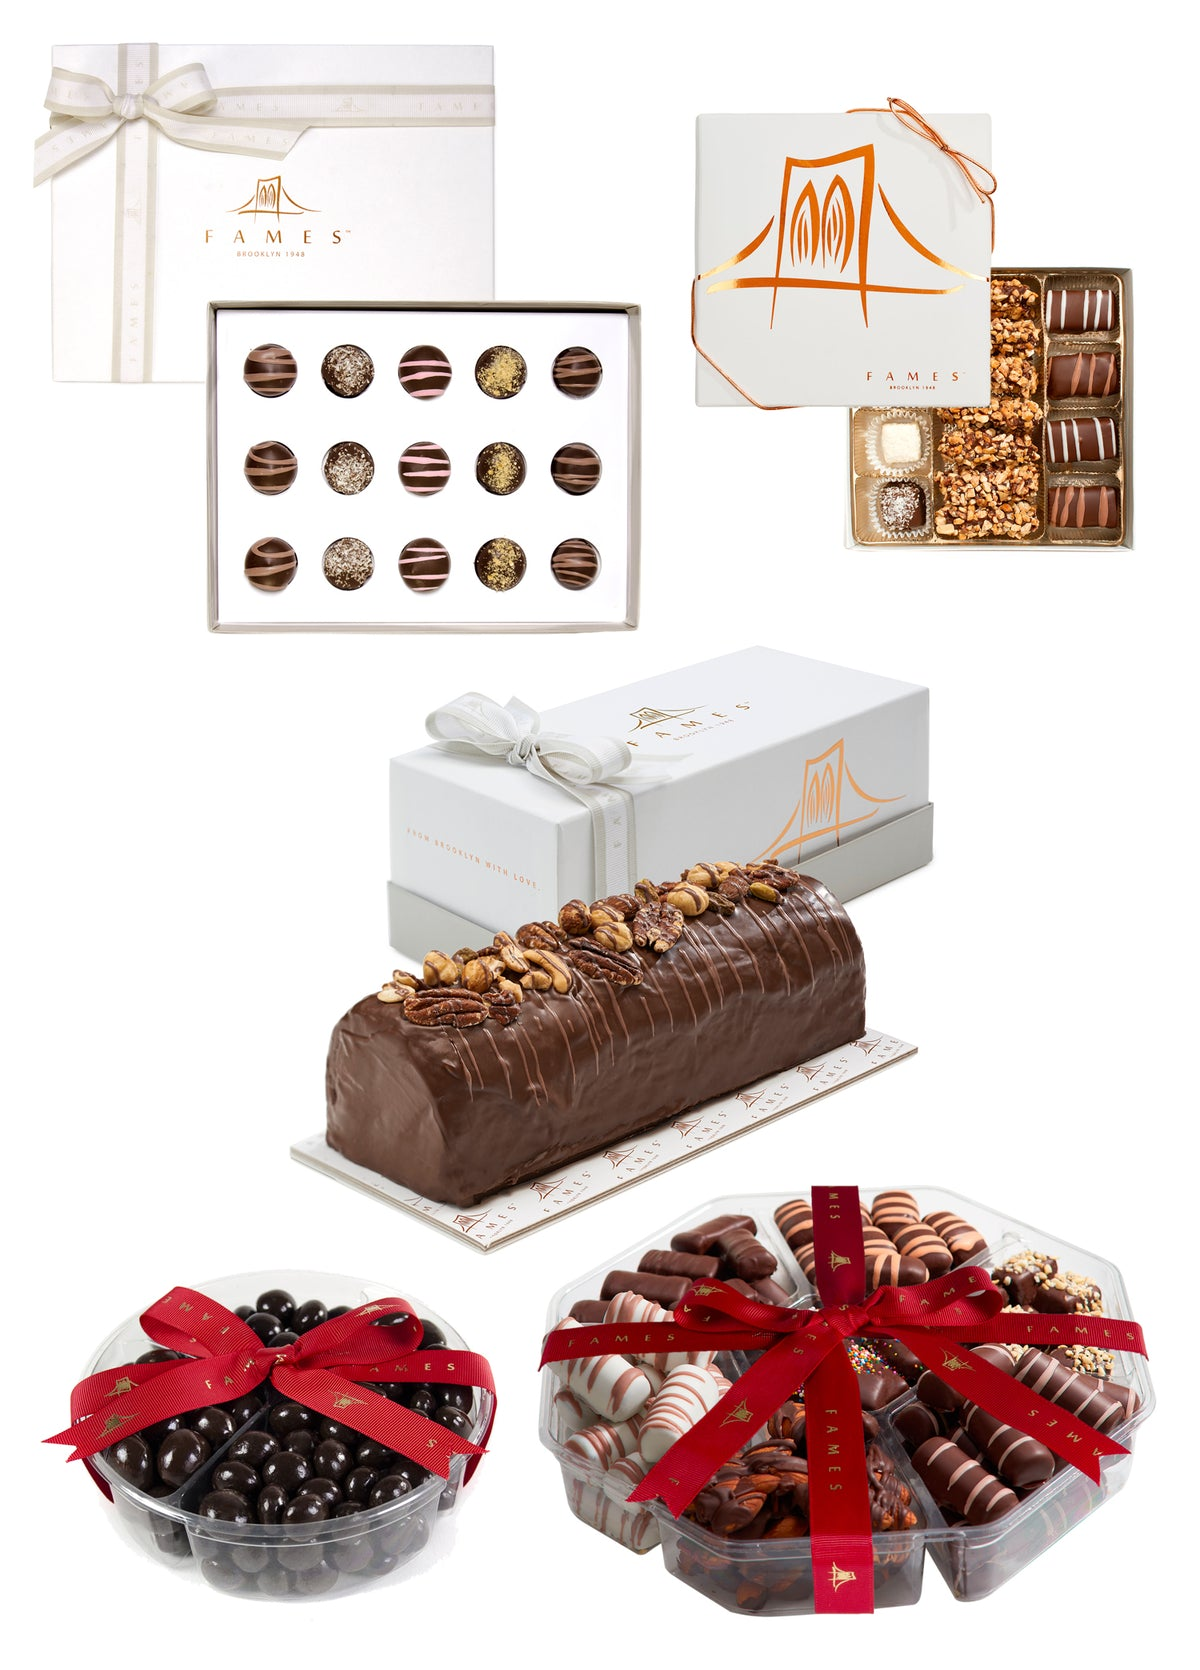 Holiday Chocolate Gift set for Families, Holiday Celebration with Festive Holiday Treats, Kosher, Dairy Free.